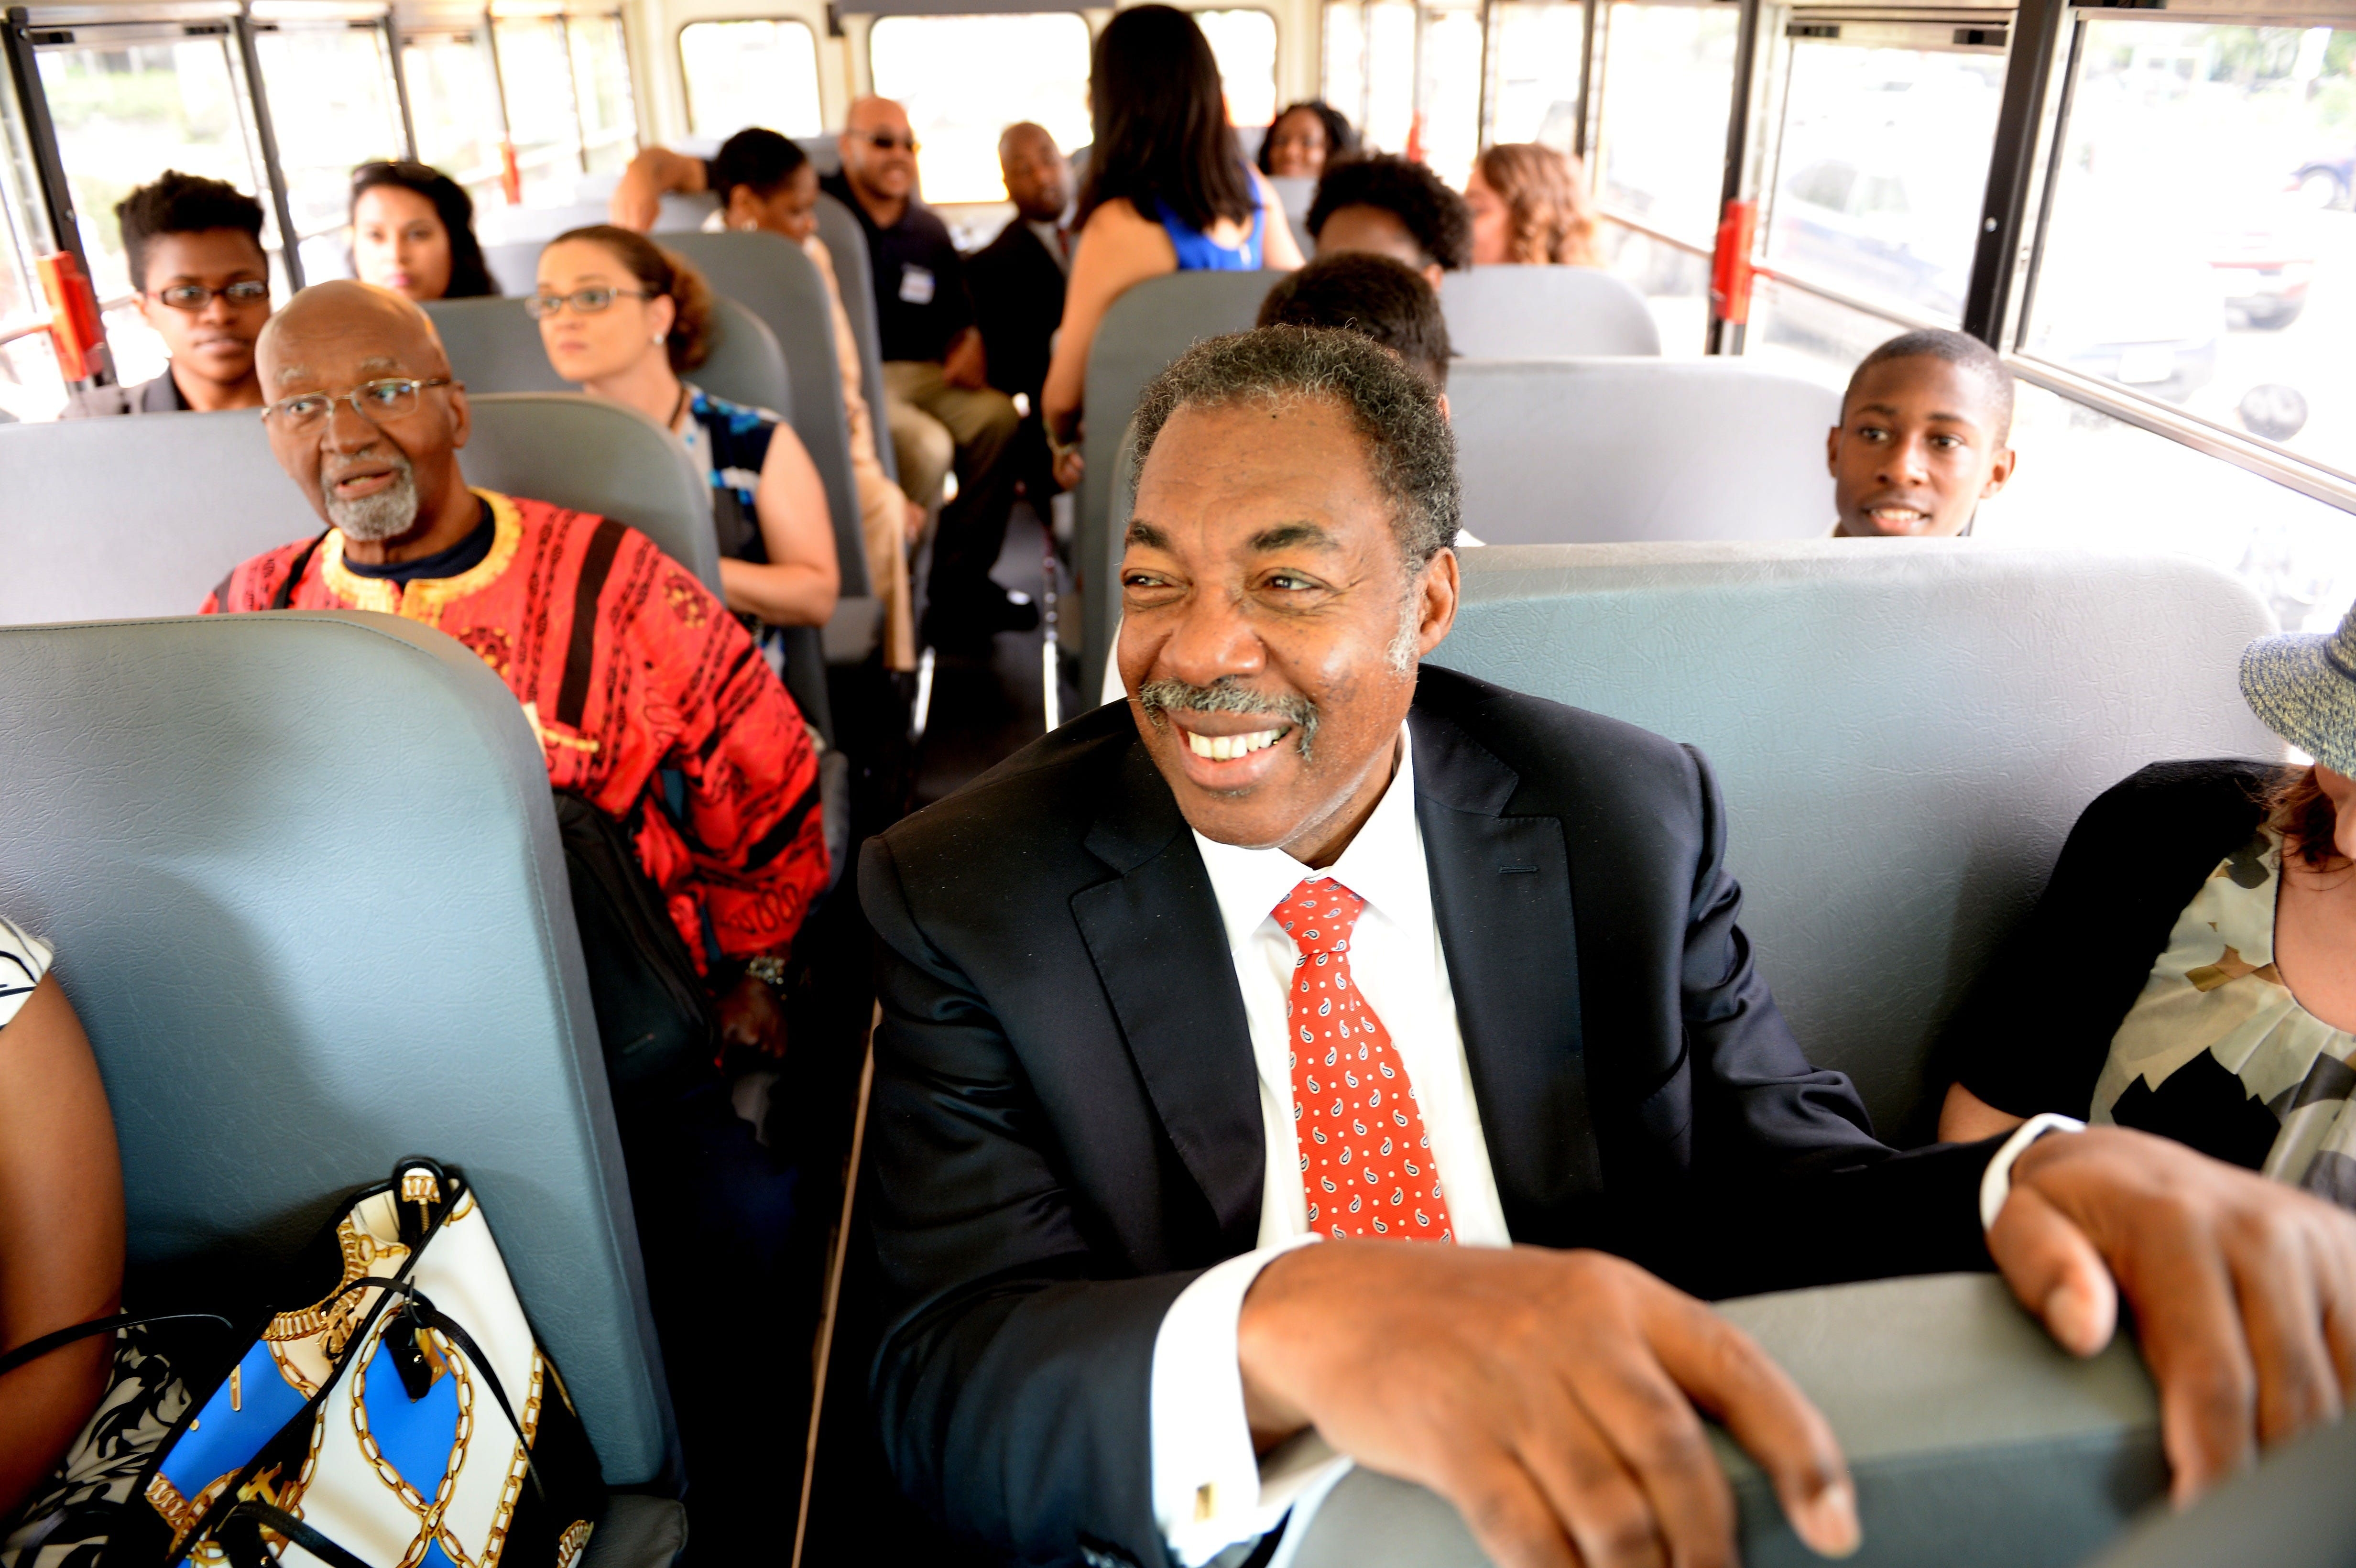 Freedom Rider Hank Thomas, front, sits on a bus for a ride to the Virginia State Capitol in Richmond after a ceremony marking the 50th anniversary of the Civil Rights Act at the Department of Education, July 2, 2014.